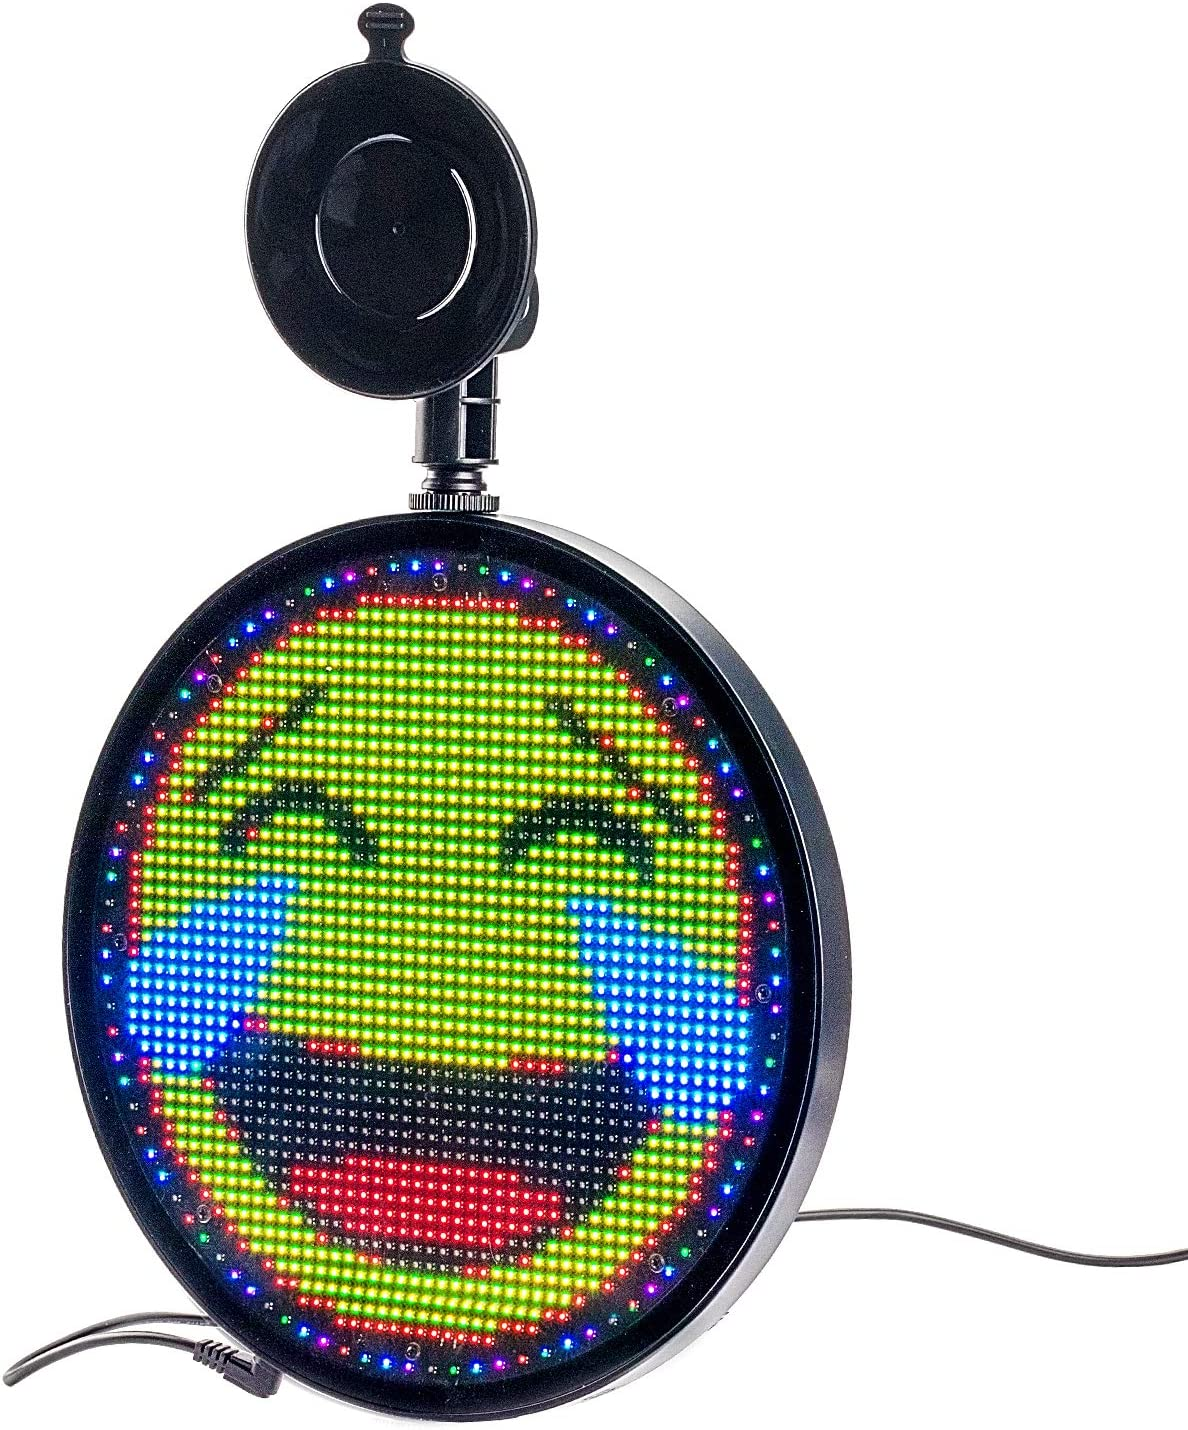 Moonite LED Screen Car Display Smiley Face Screen Visibility Glow Wireless Remote APP Control